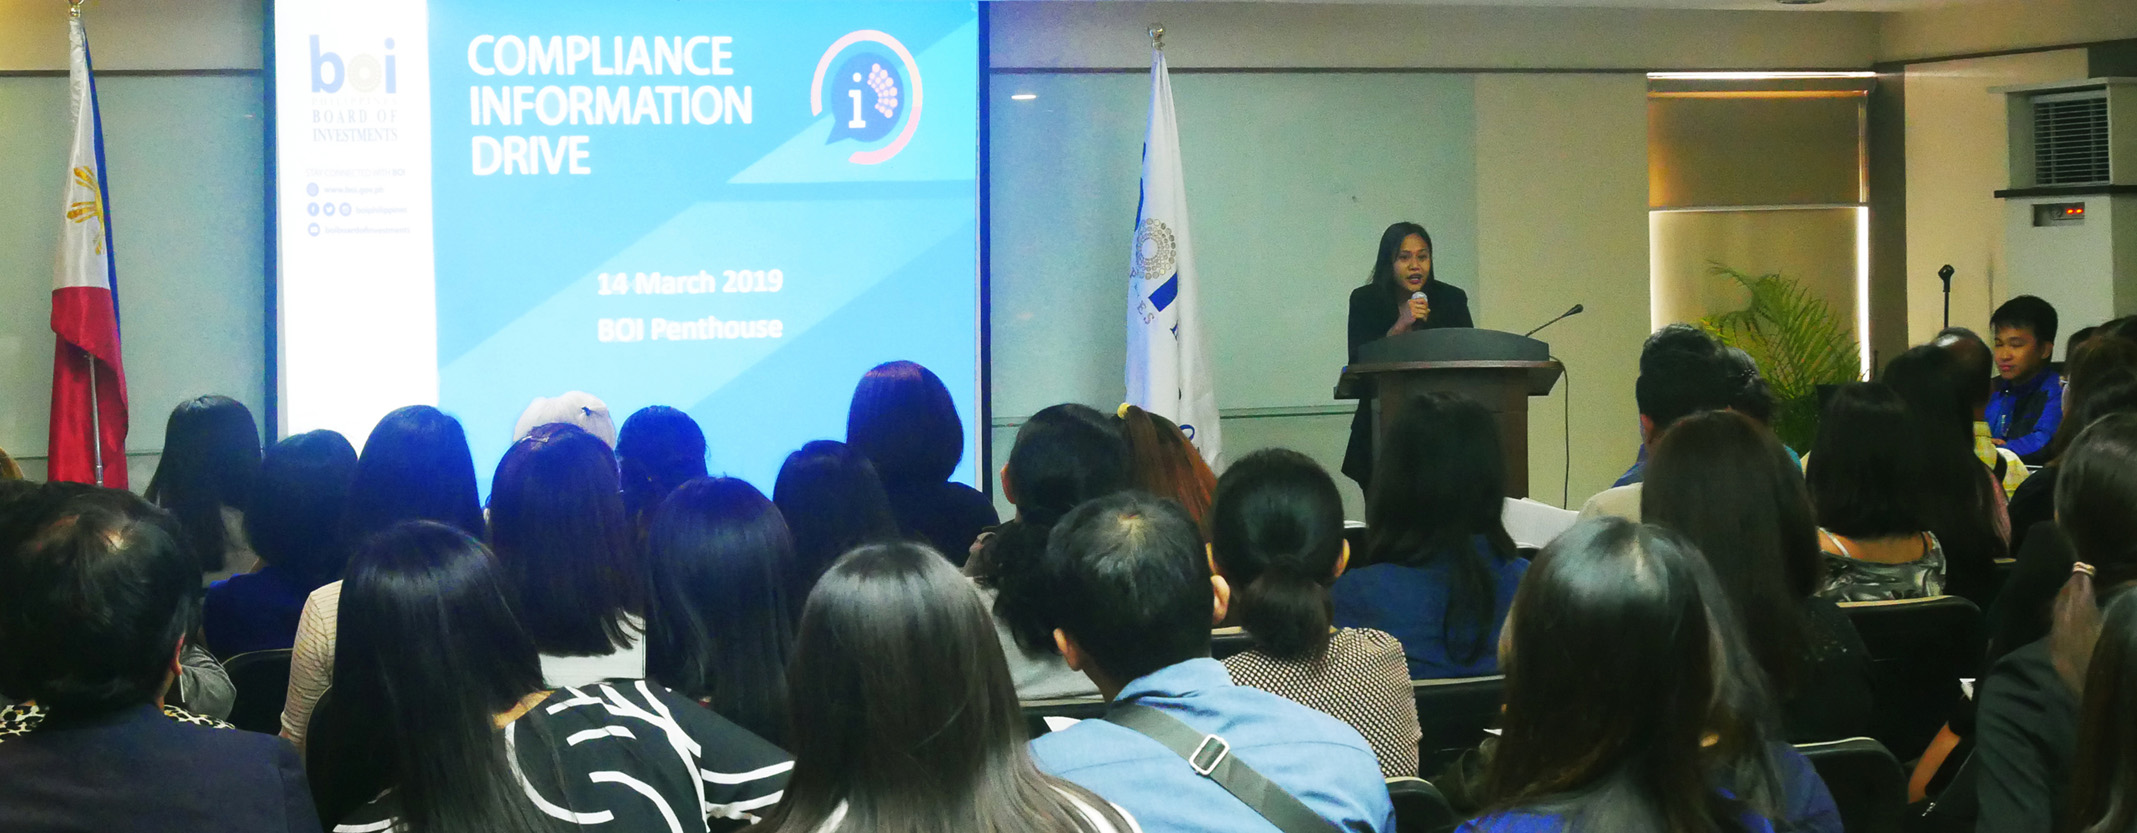 PH Board of Investment conducts info drive to further encourage compliance, new policies and guidelines